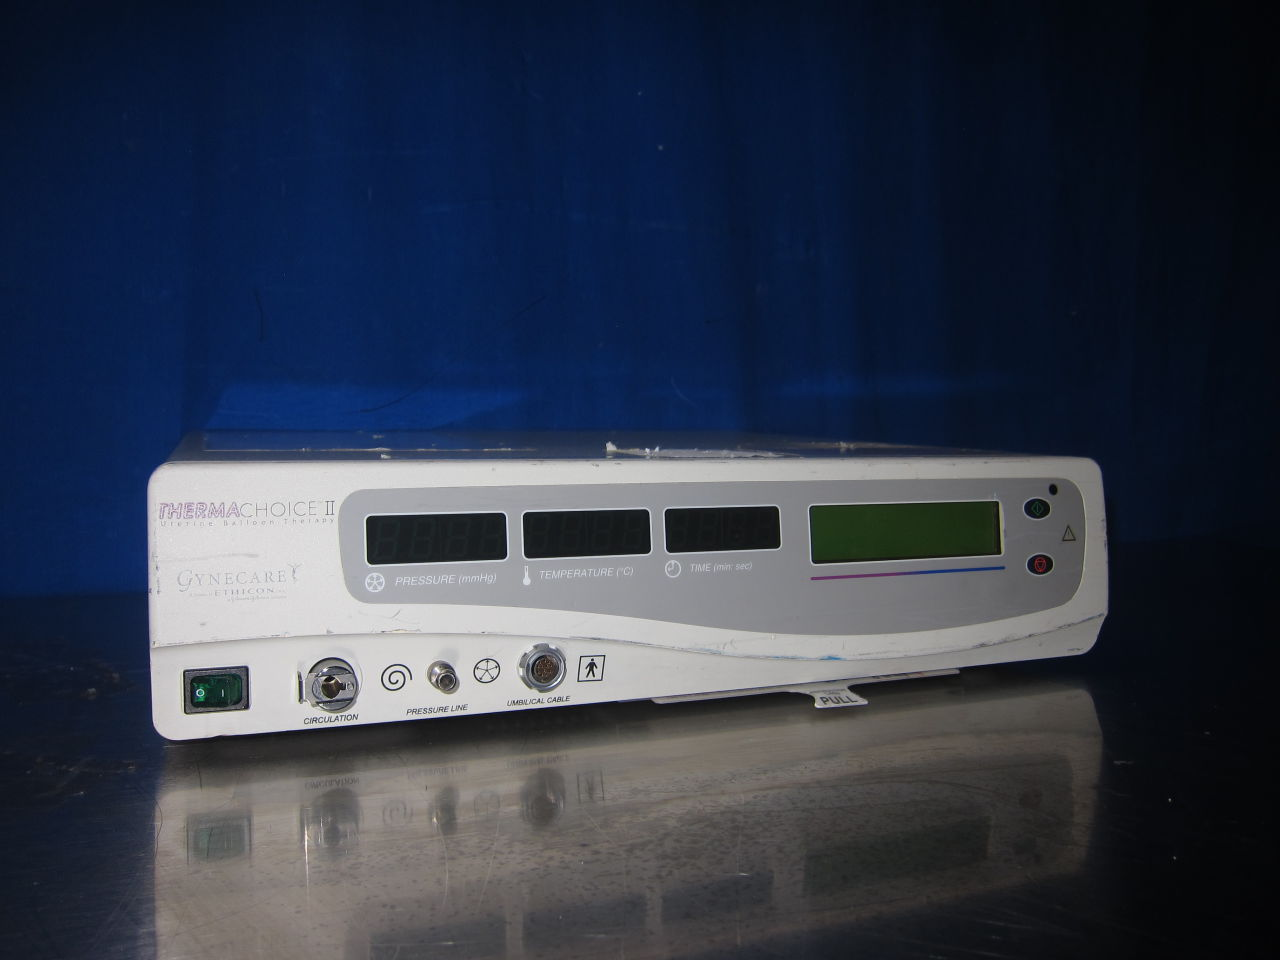 GYNECARE ETHICON Thermachoice II Balloon Pump